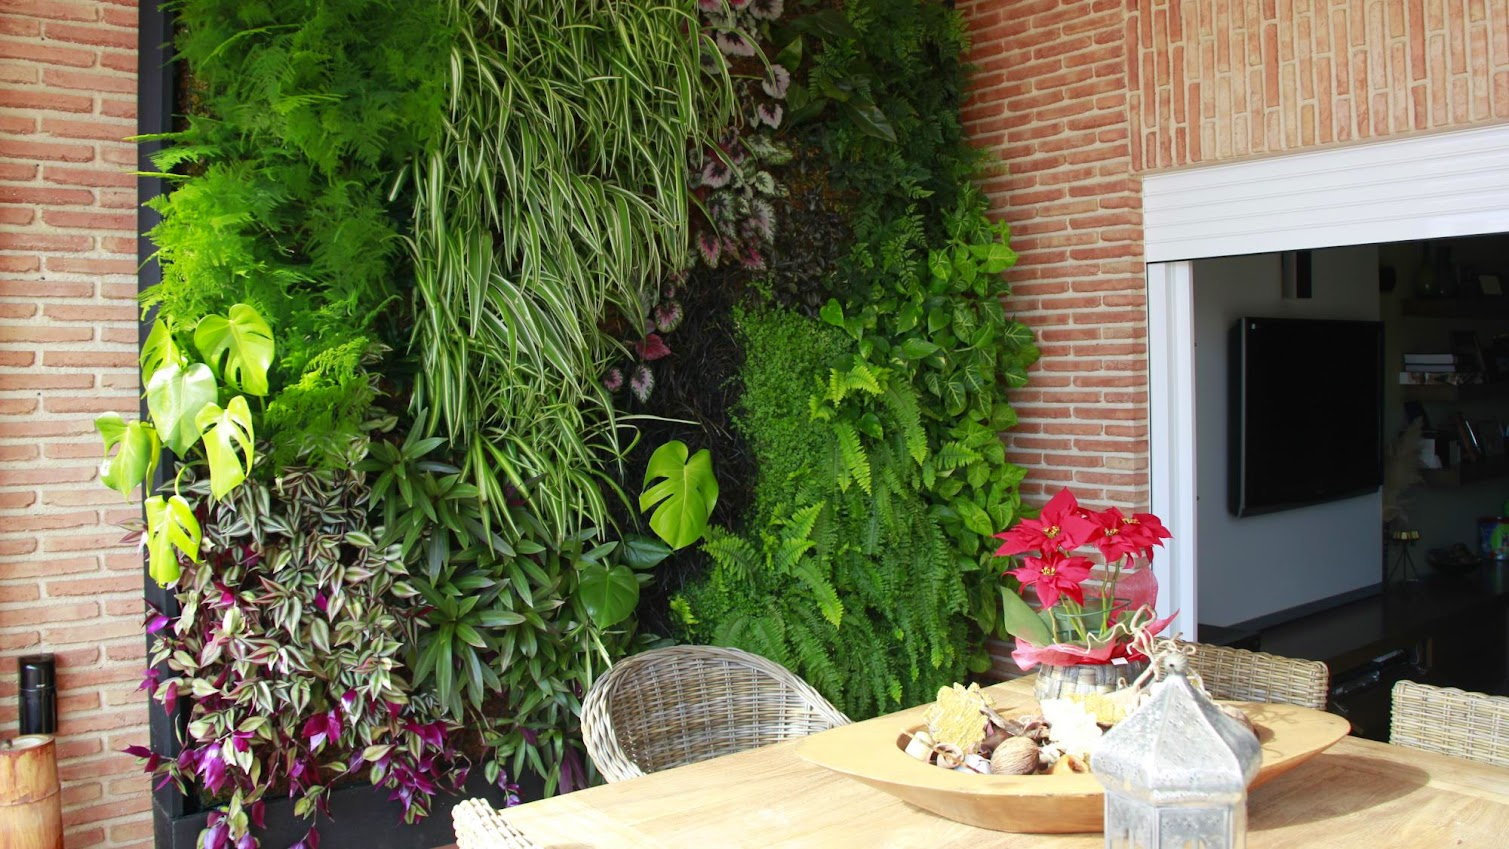 Los beneficios de un jardn vertical interior